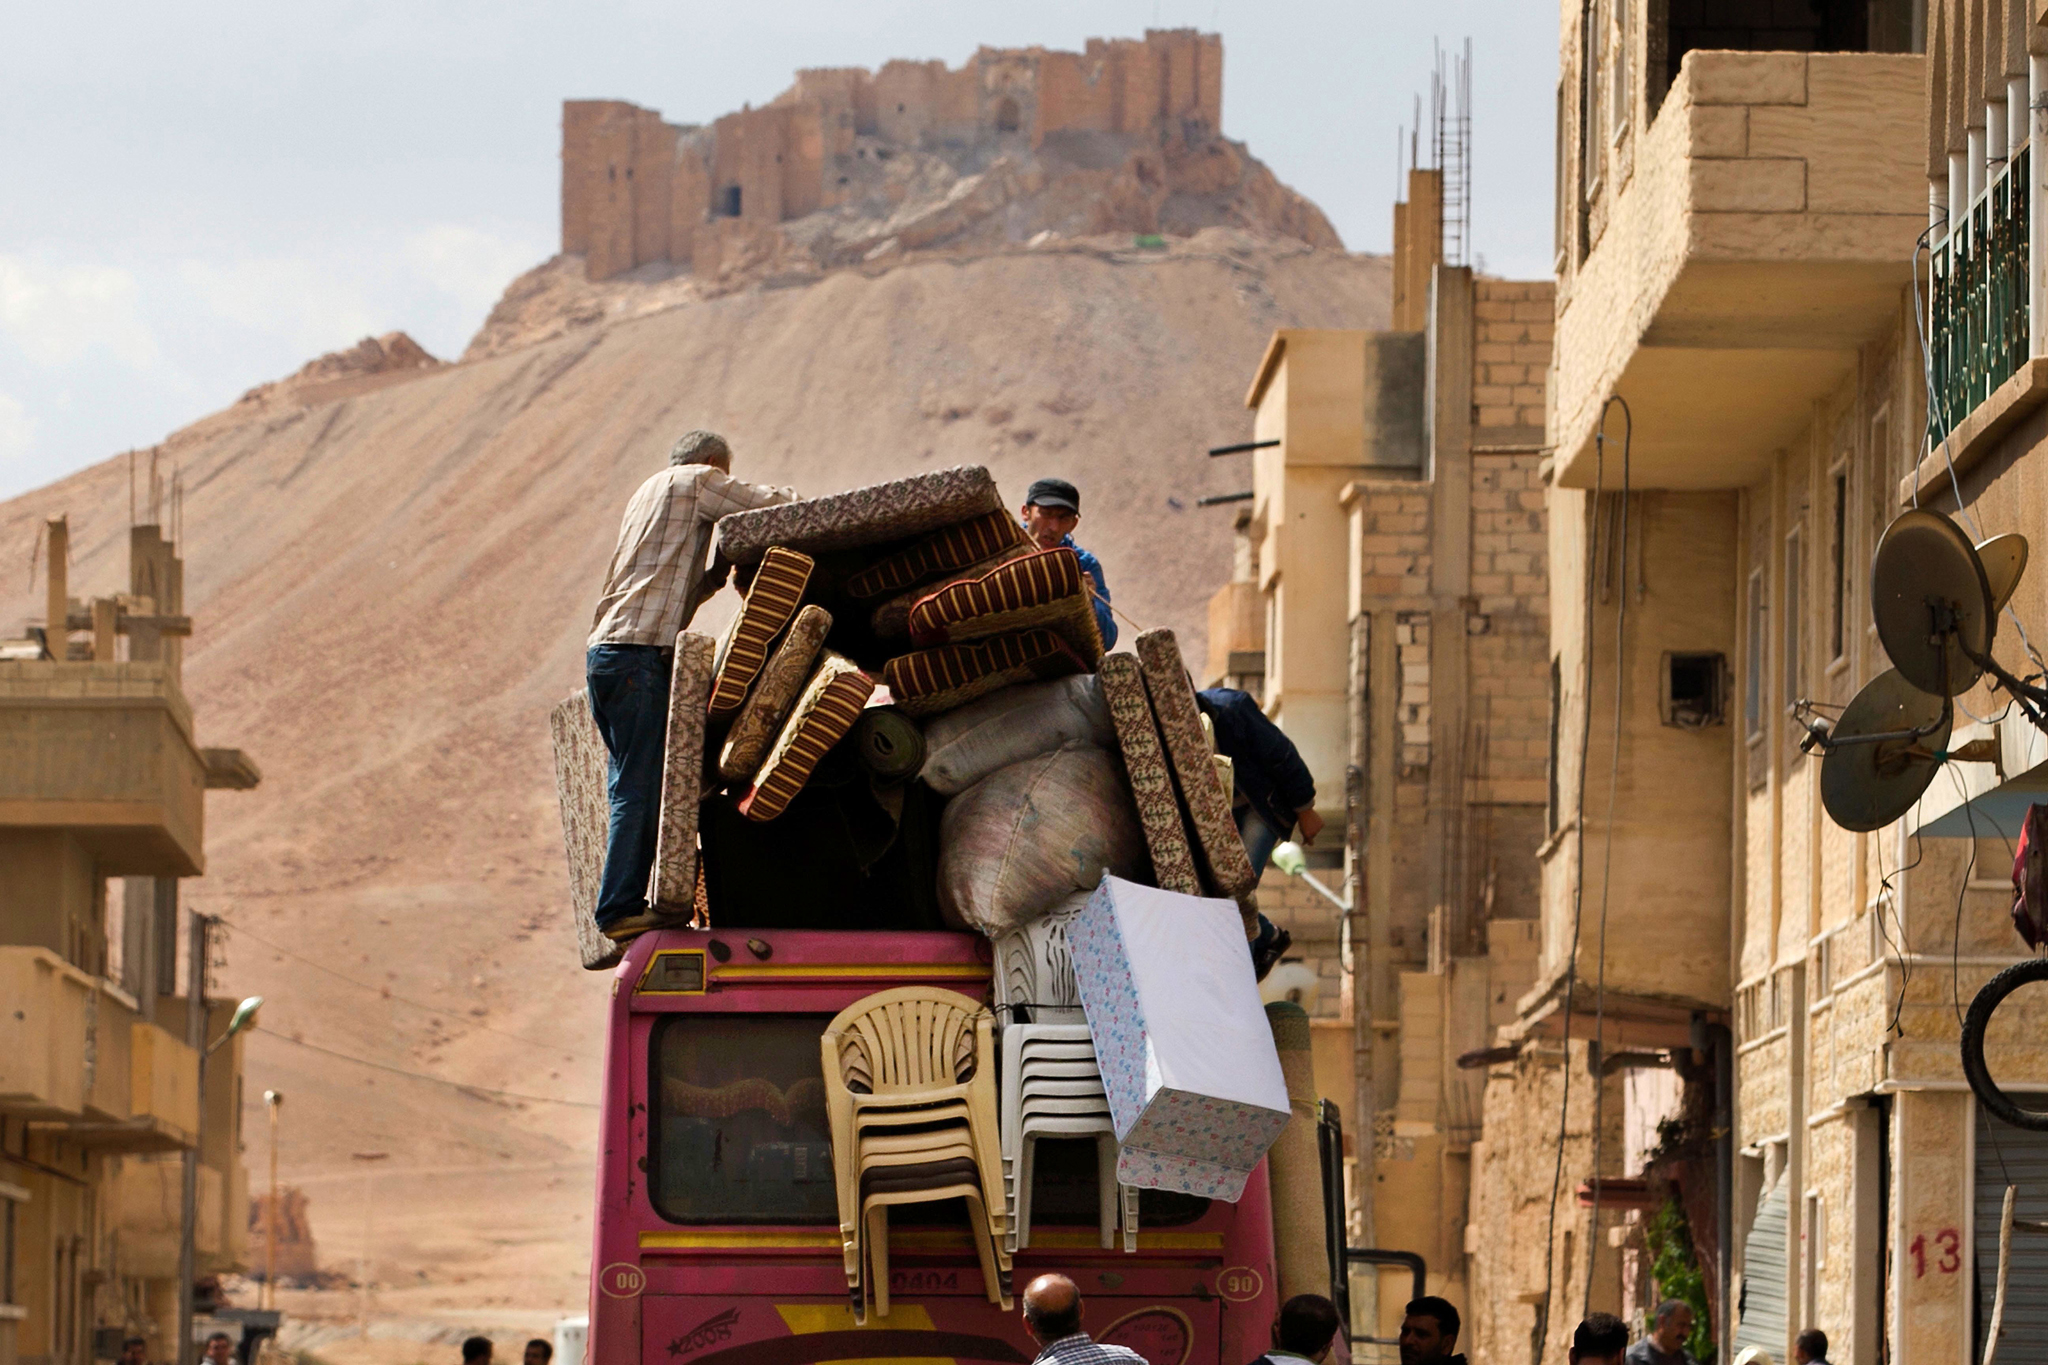 In this picture taken Thursday, April 14, 2016, the Palmyra citadel is seen in the background as Syrian families load their belongings onto a bus in the town of Palmyra in the central Homs province, Syria. Thousands of residents of this ancient town who fled Islamic State rule are returning briefly to check on their homes and salvage what they can _ some carpets, blankets, a fridge or a few family mementos. (AP Photo/Hassan Ammar)